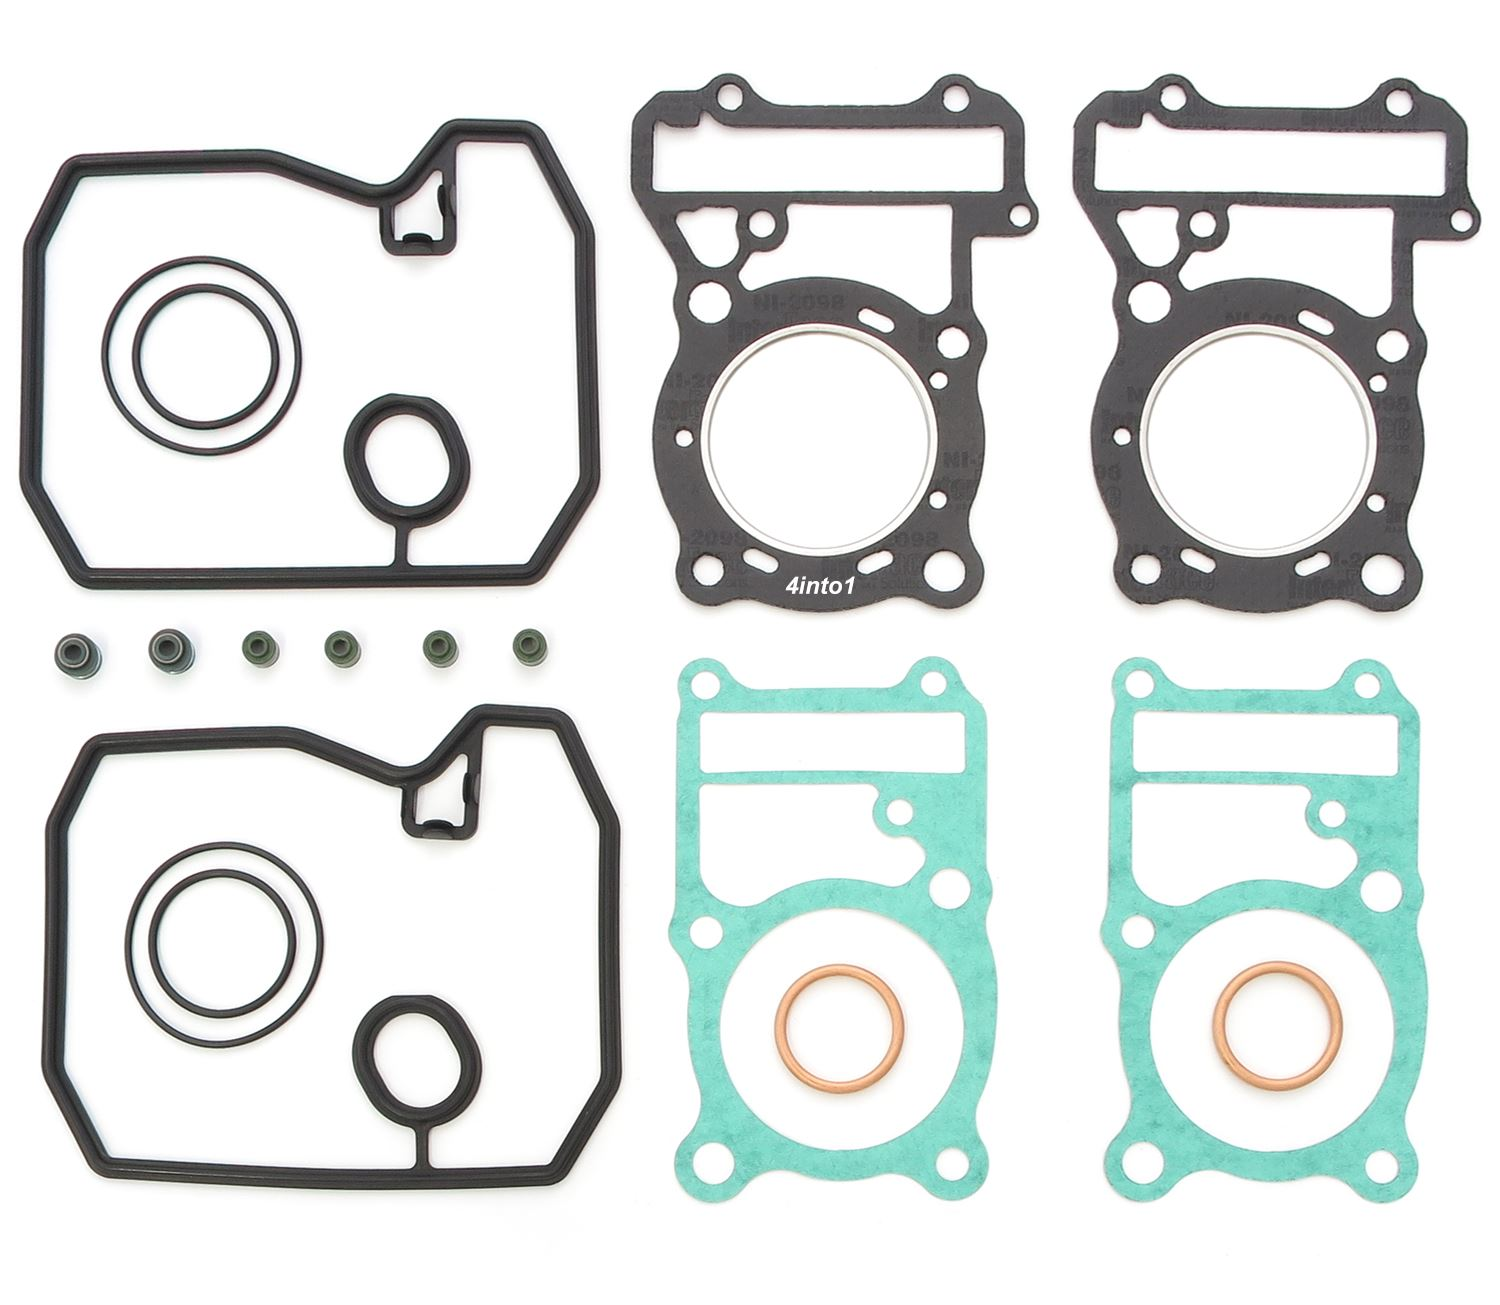 Top End Gasket Set Honda Vt500 Vt500c Shadow 1983 1986 Vt500ft Parts 4into1 Vintage Motorcycle